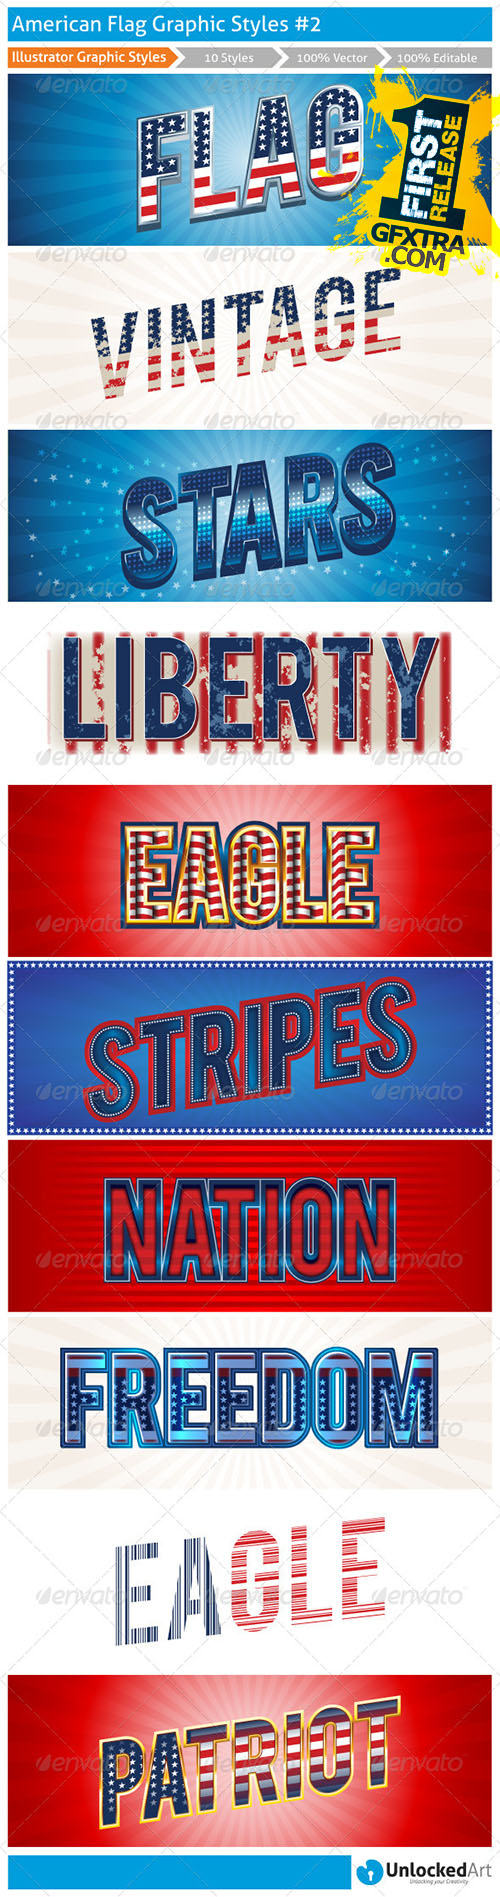 Graphicriver - American Graphic Styles 2 8127970